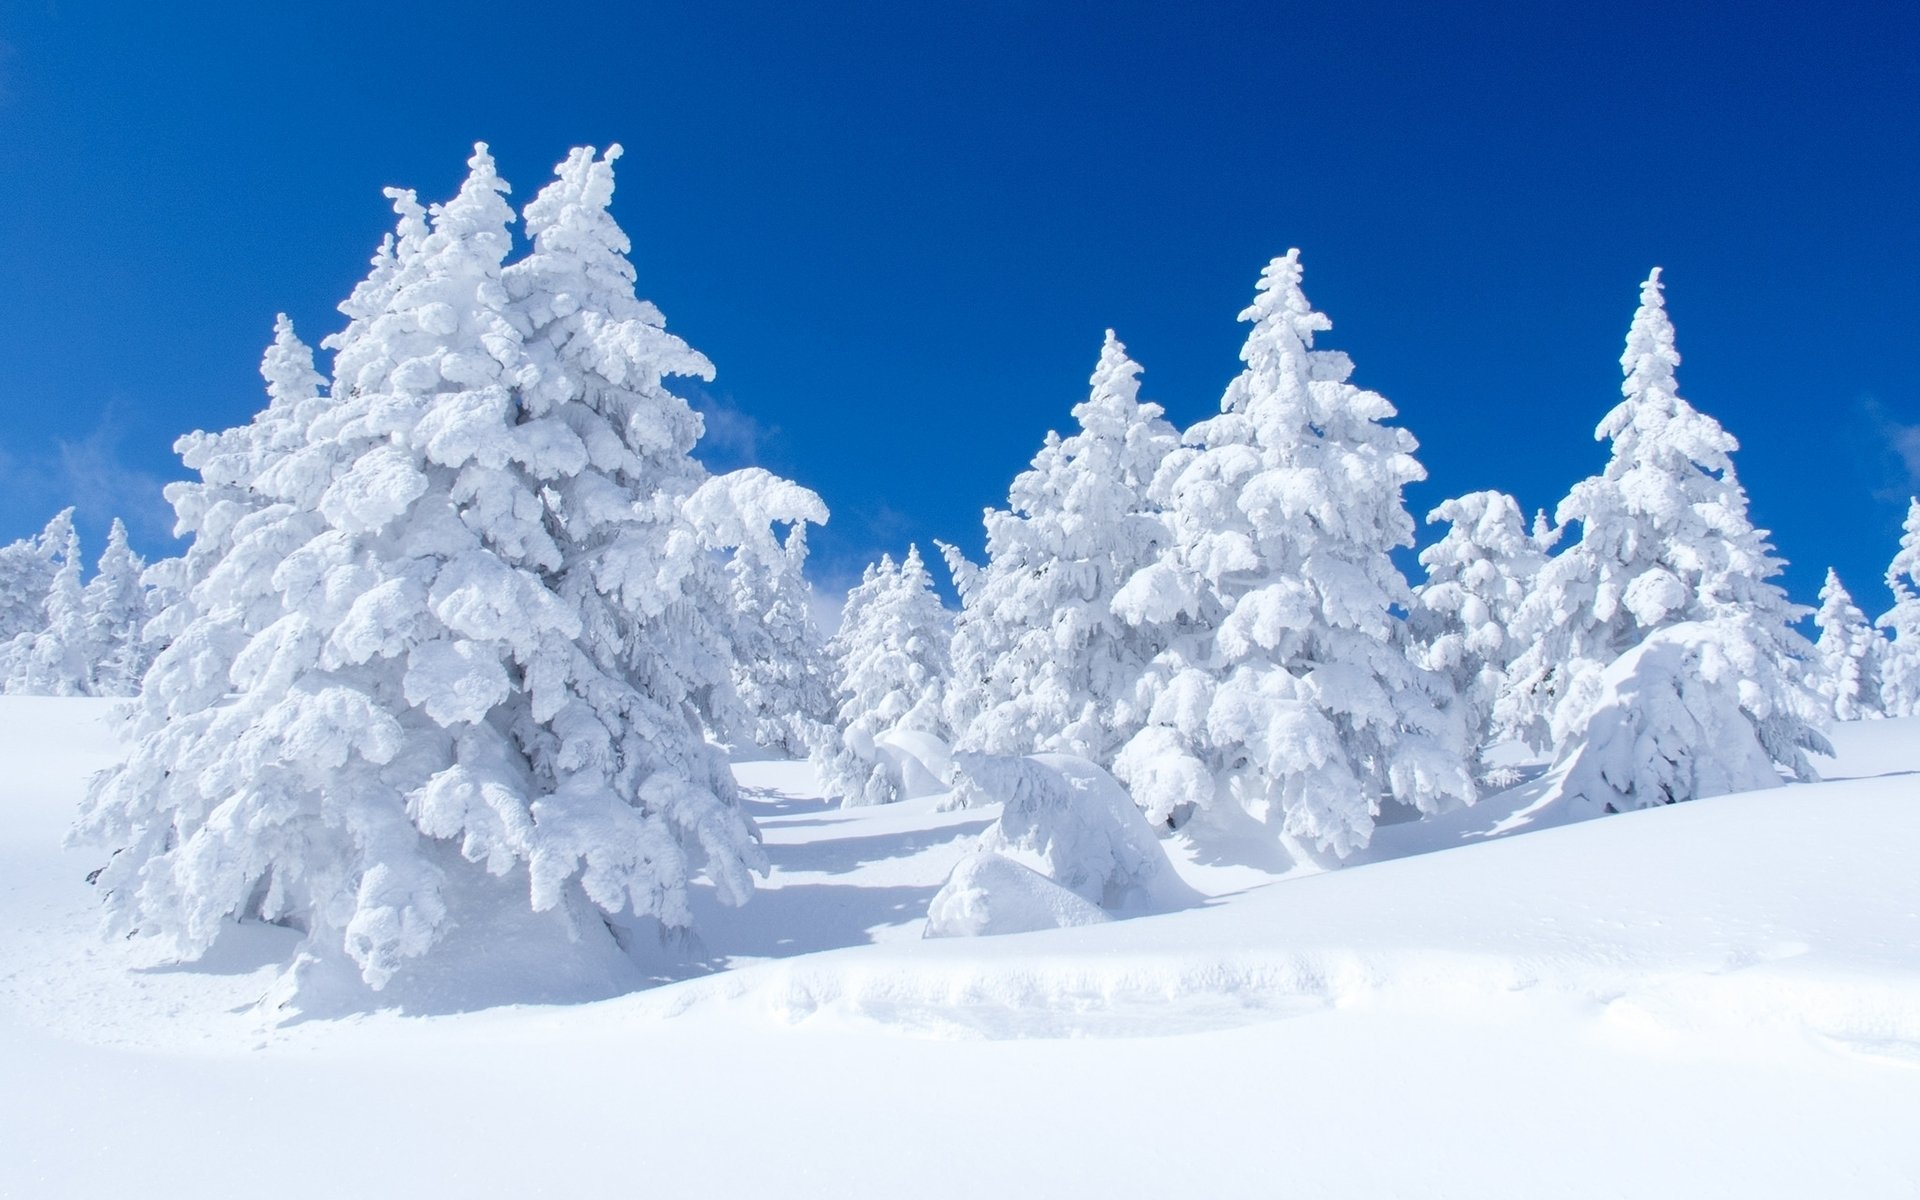 Iphone 7 Wallpaper Pinterest Snow Covered Pine Trees Full Hd Wallpaper And Background